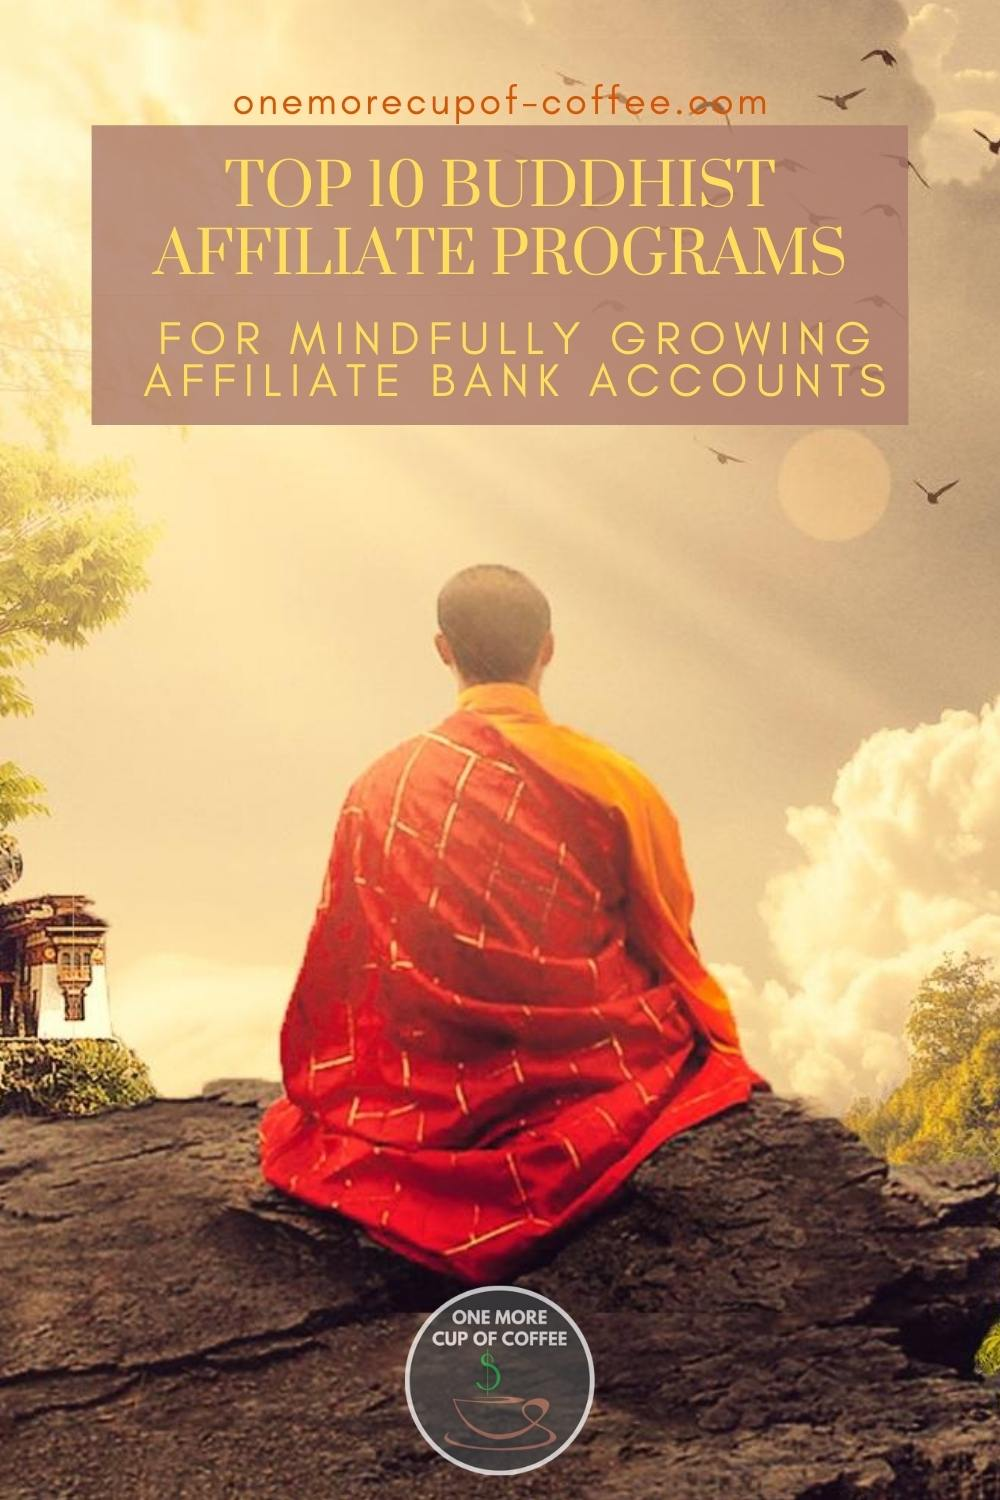 """a Buddhist in meditation, back to the camera, with text overlay """"Top 10 Buddhist Affiliate Programs For Mindfully Growing Affiliate Bank Accounts"""""""